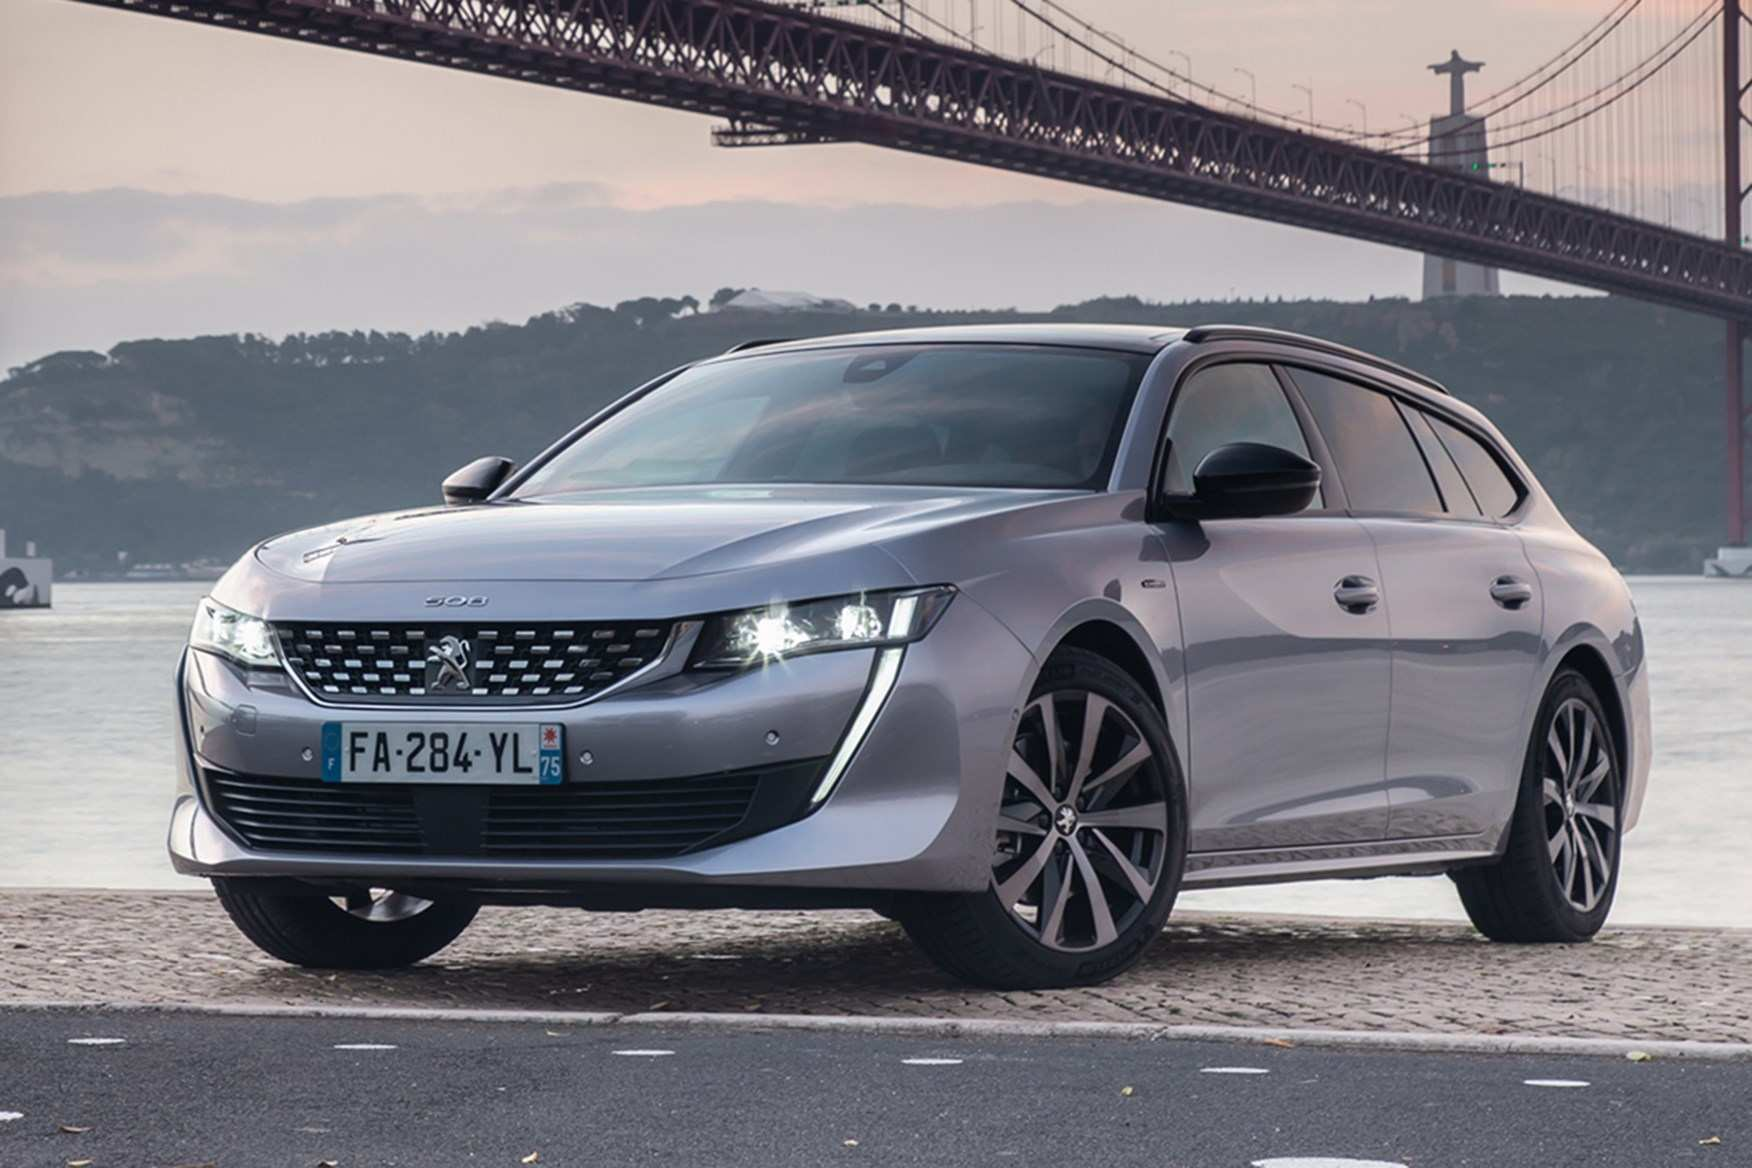 82 Concept of 2019 Peugeot 508 Sw Performance by 2019 Peugeot 508 Sw